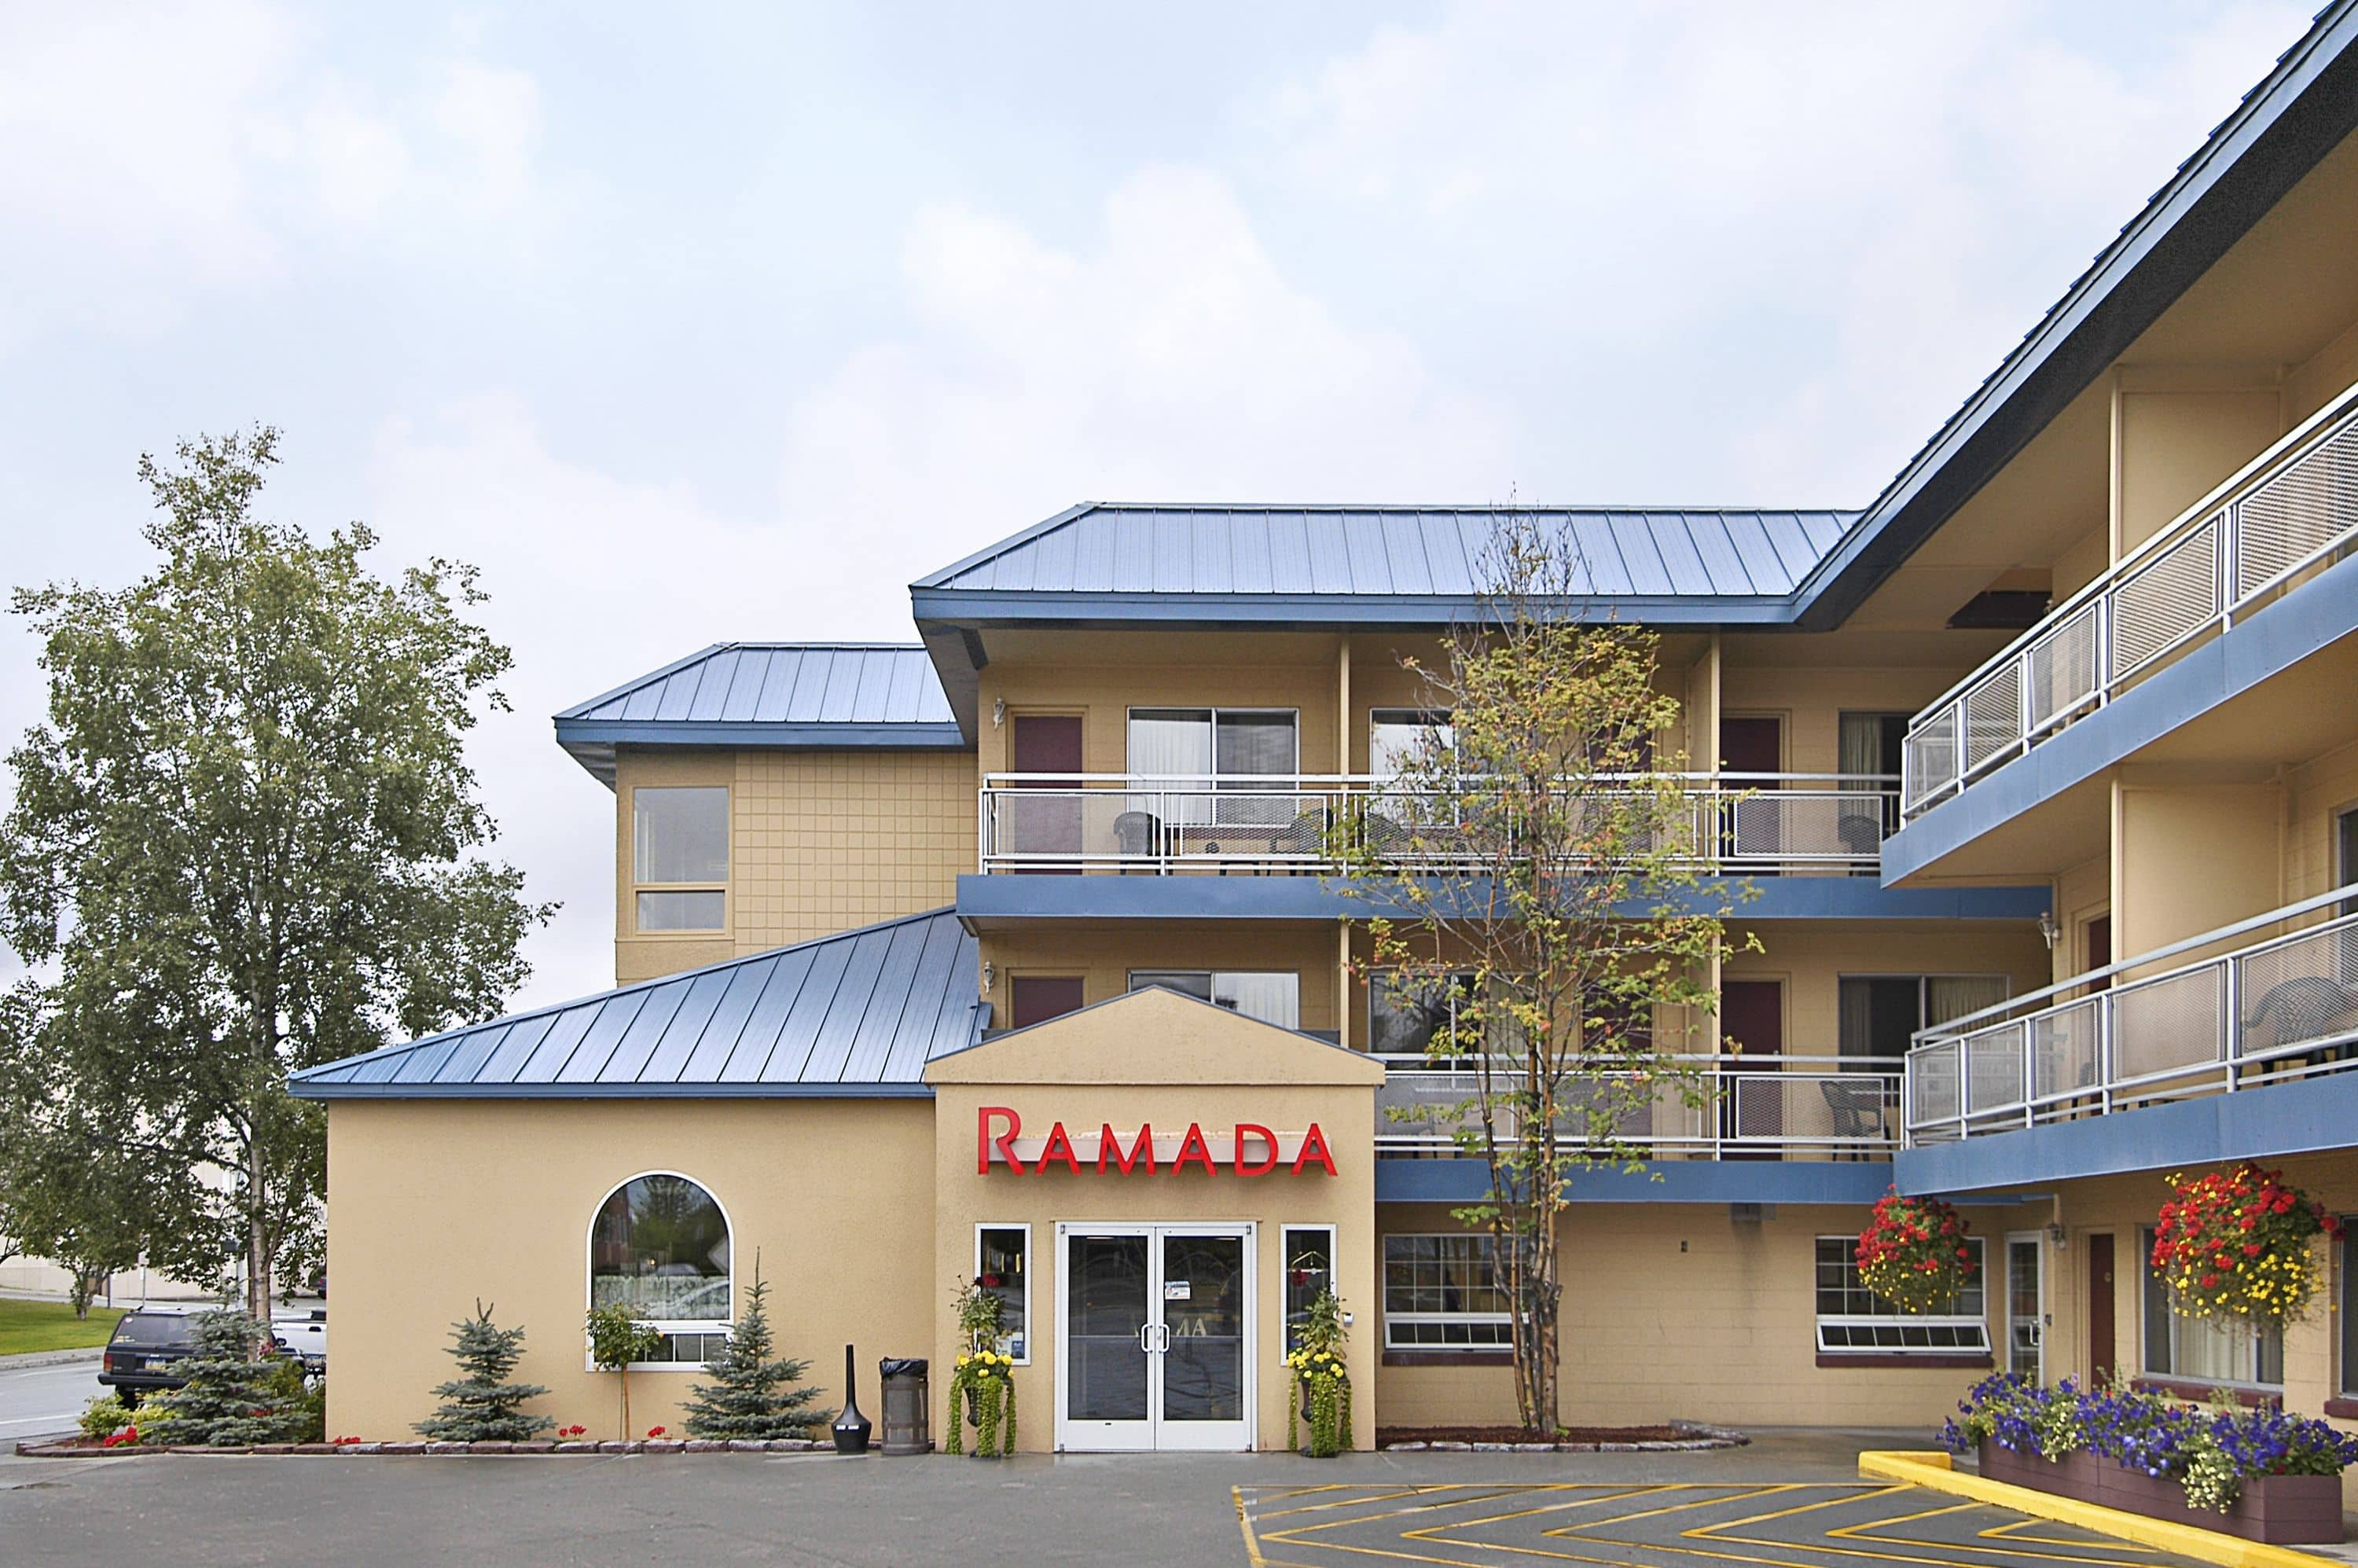 Amazing Exterior Of Ramada Anchorage Hotel In Alaska With Hotels Near Airport